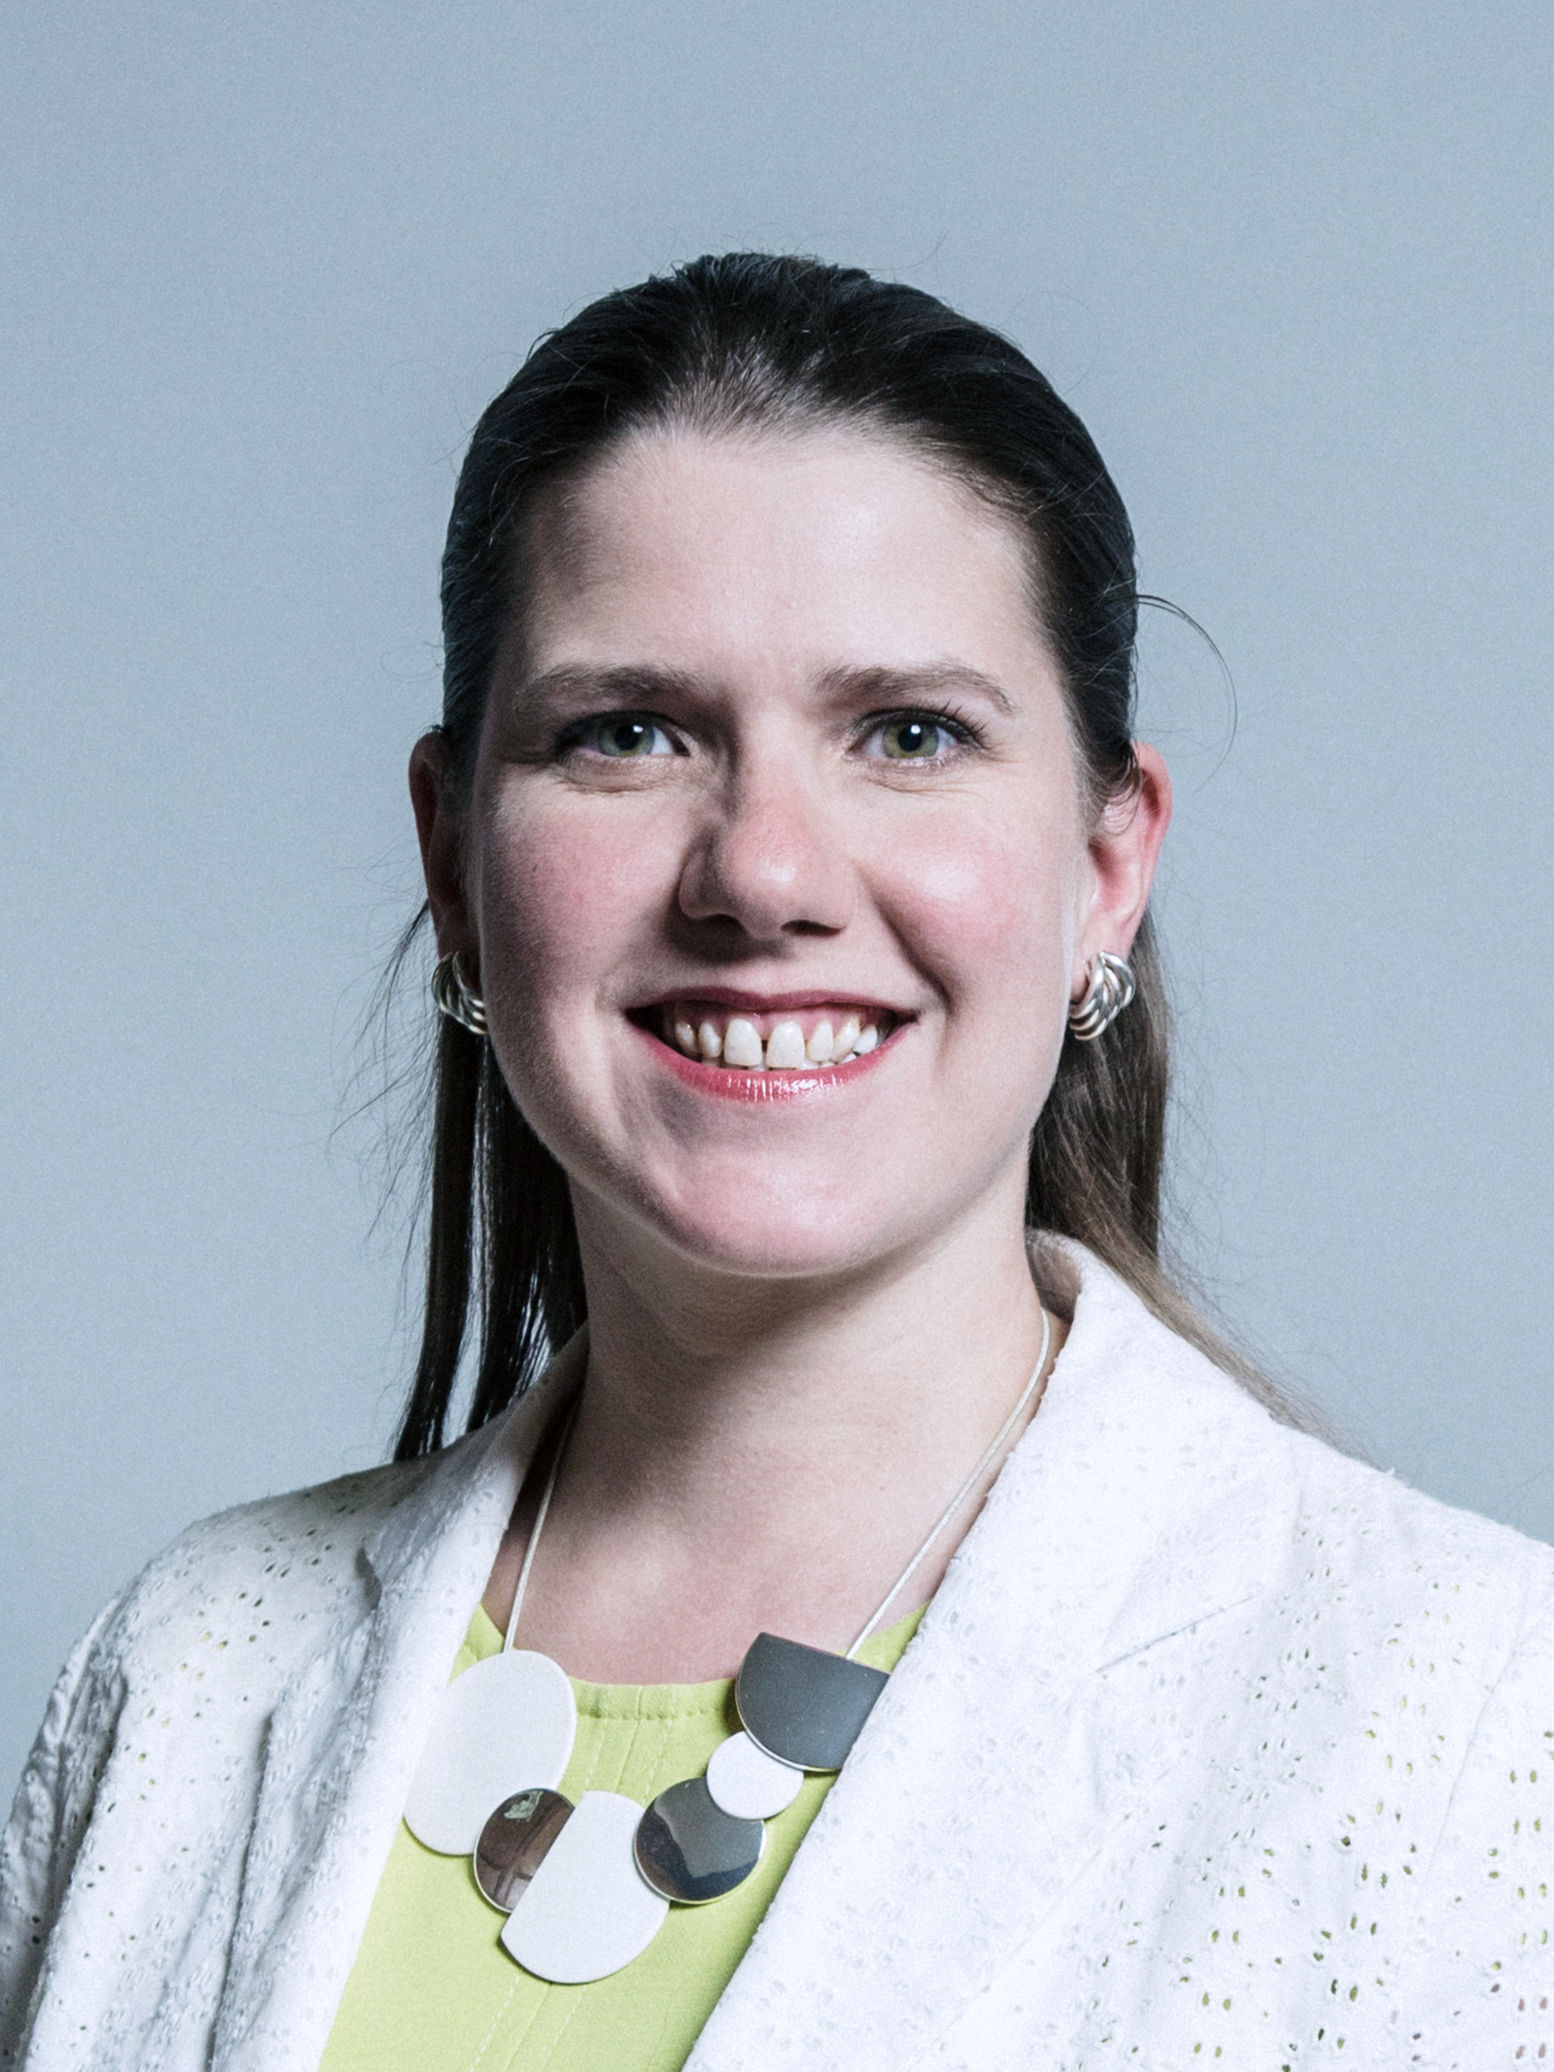 Jo Swinson, a white woman with dark hair, is smiling at the camera